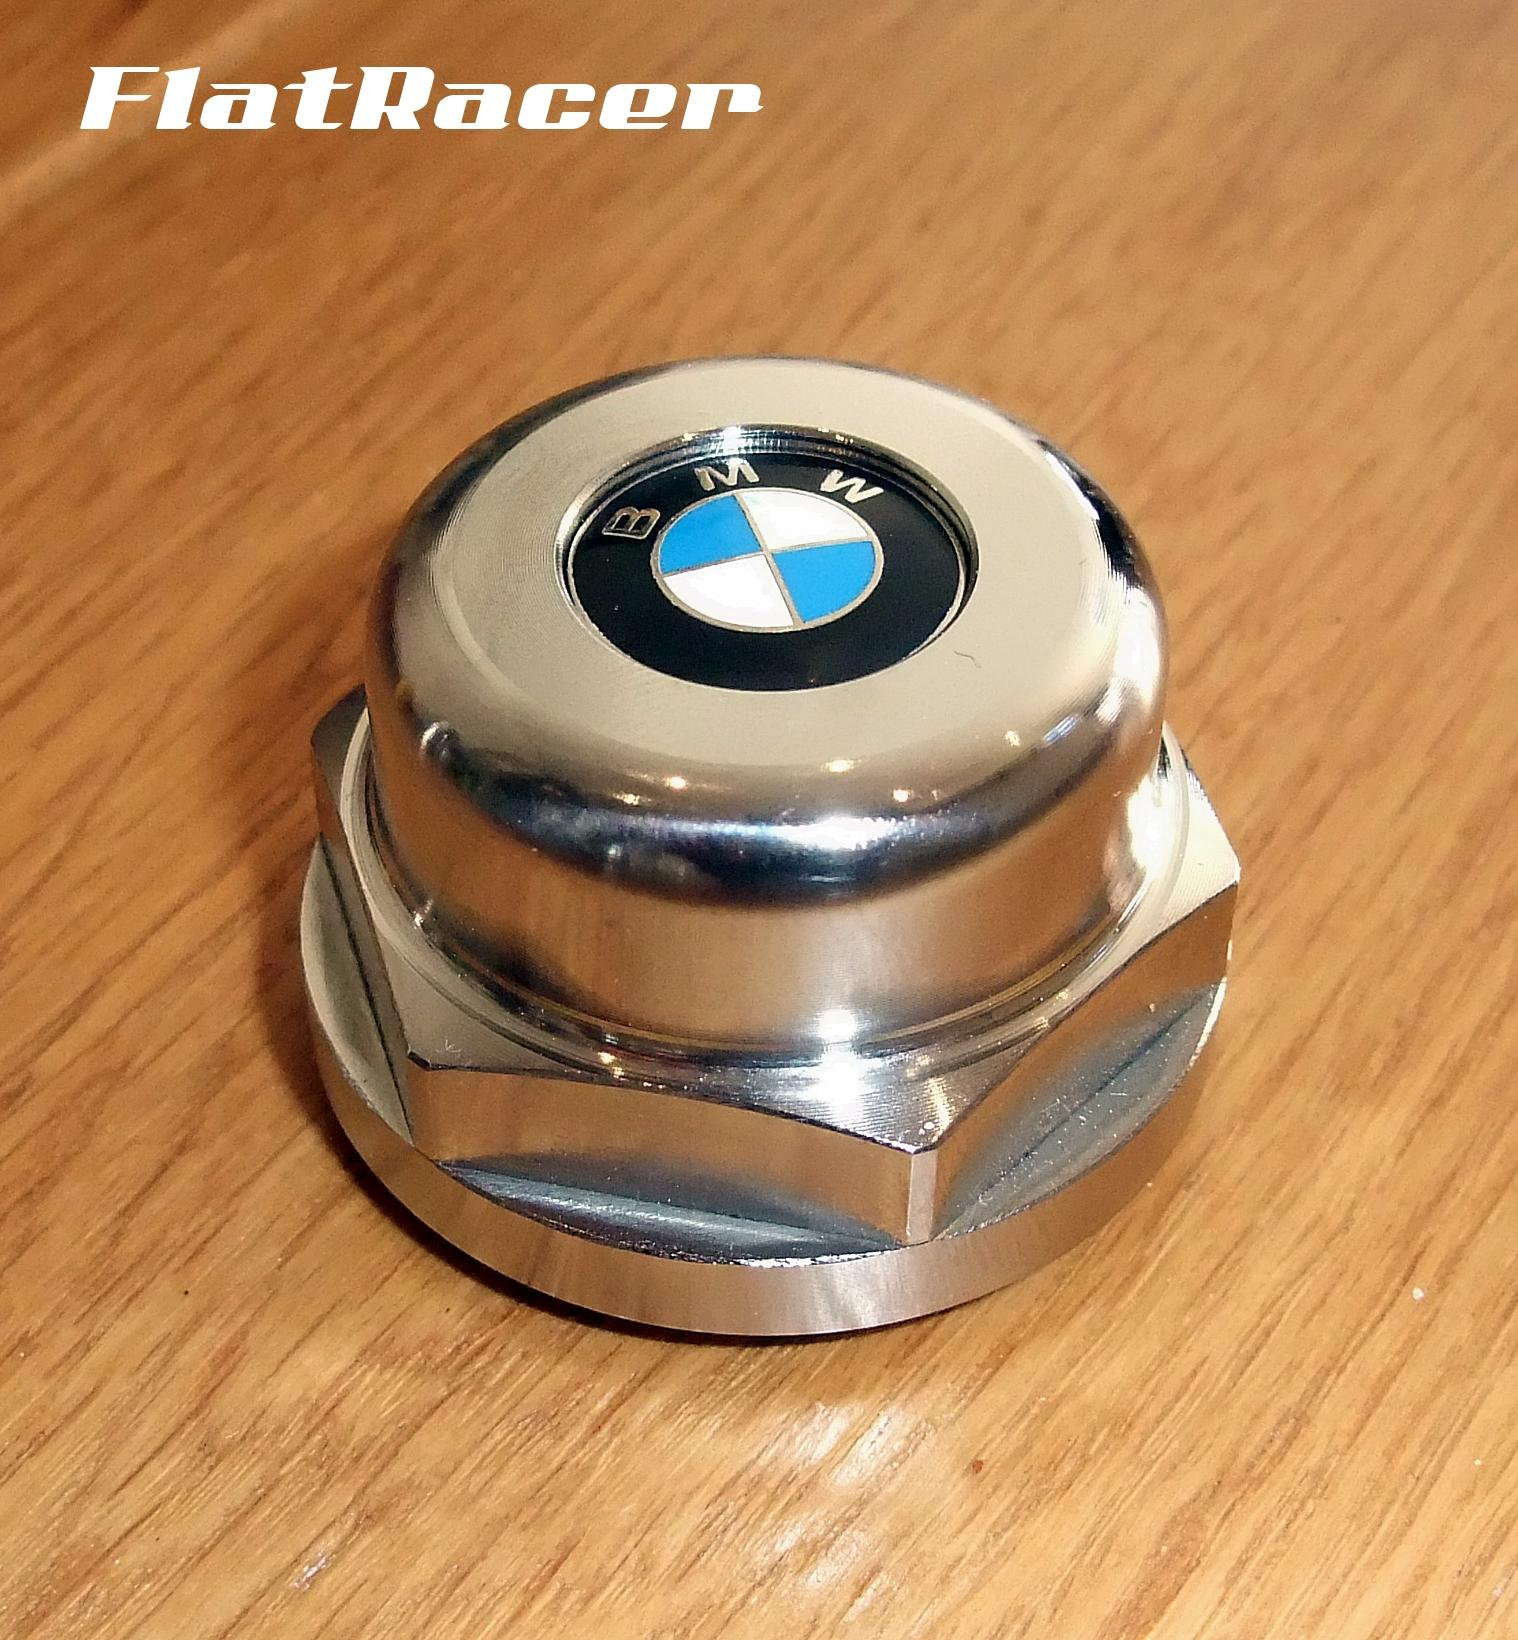 FlatRacer BMW /5, /6, /7 & Monolever s/s steering stem/top yoke top centre nut w/ 16mm BMW enamel badge